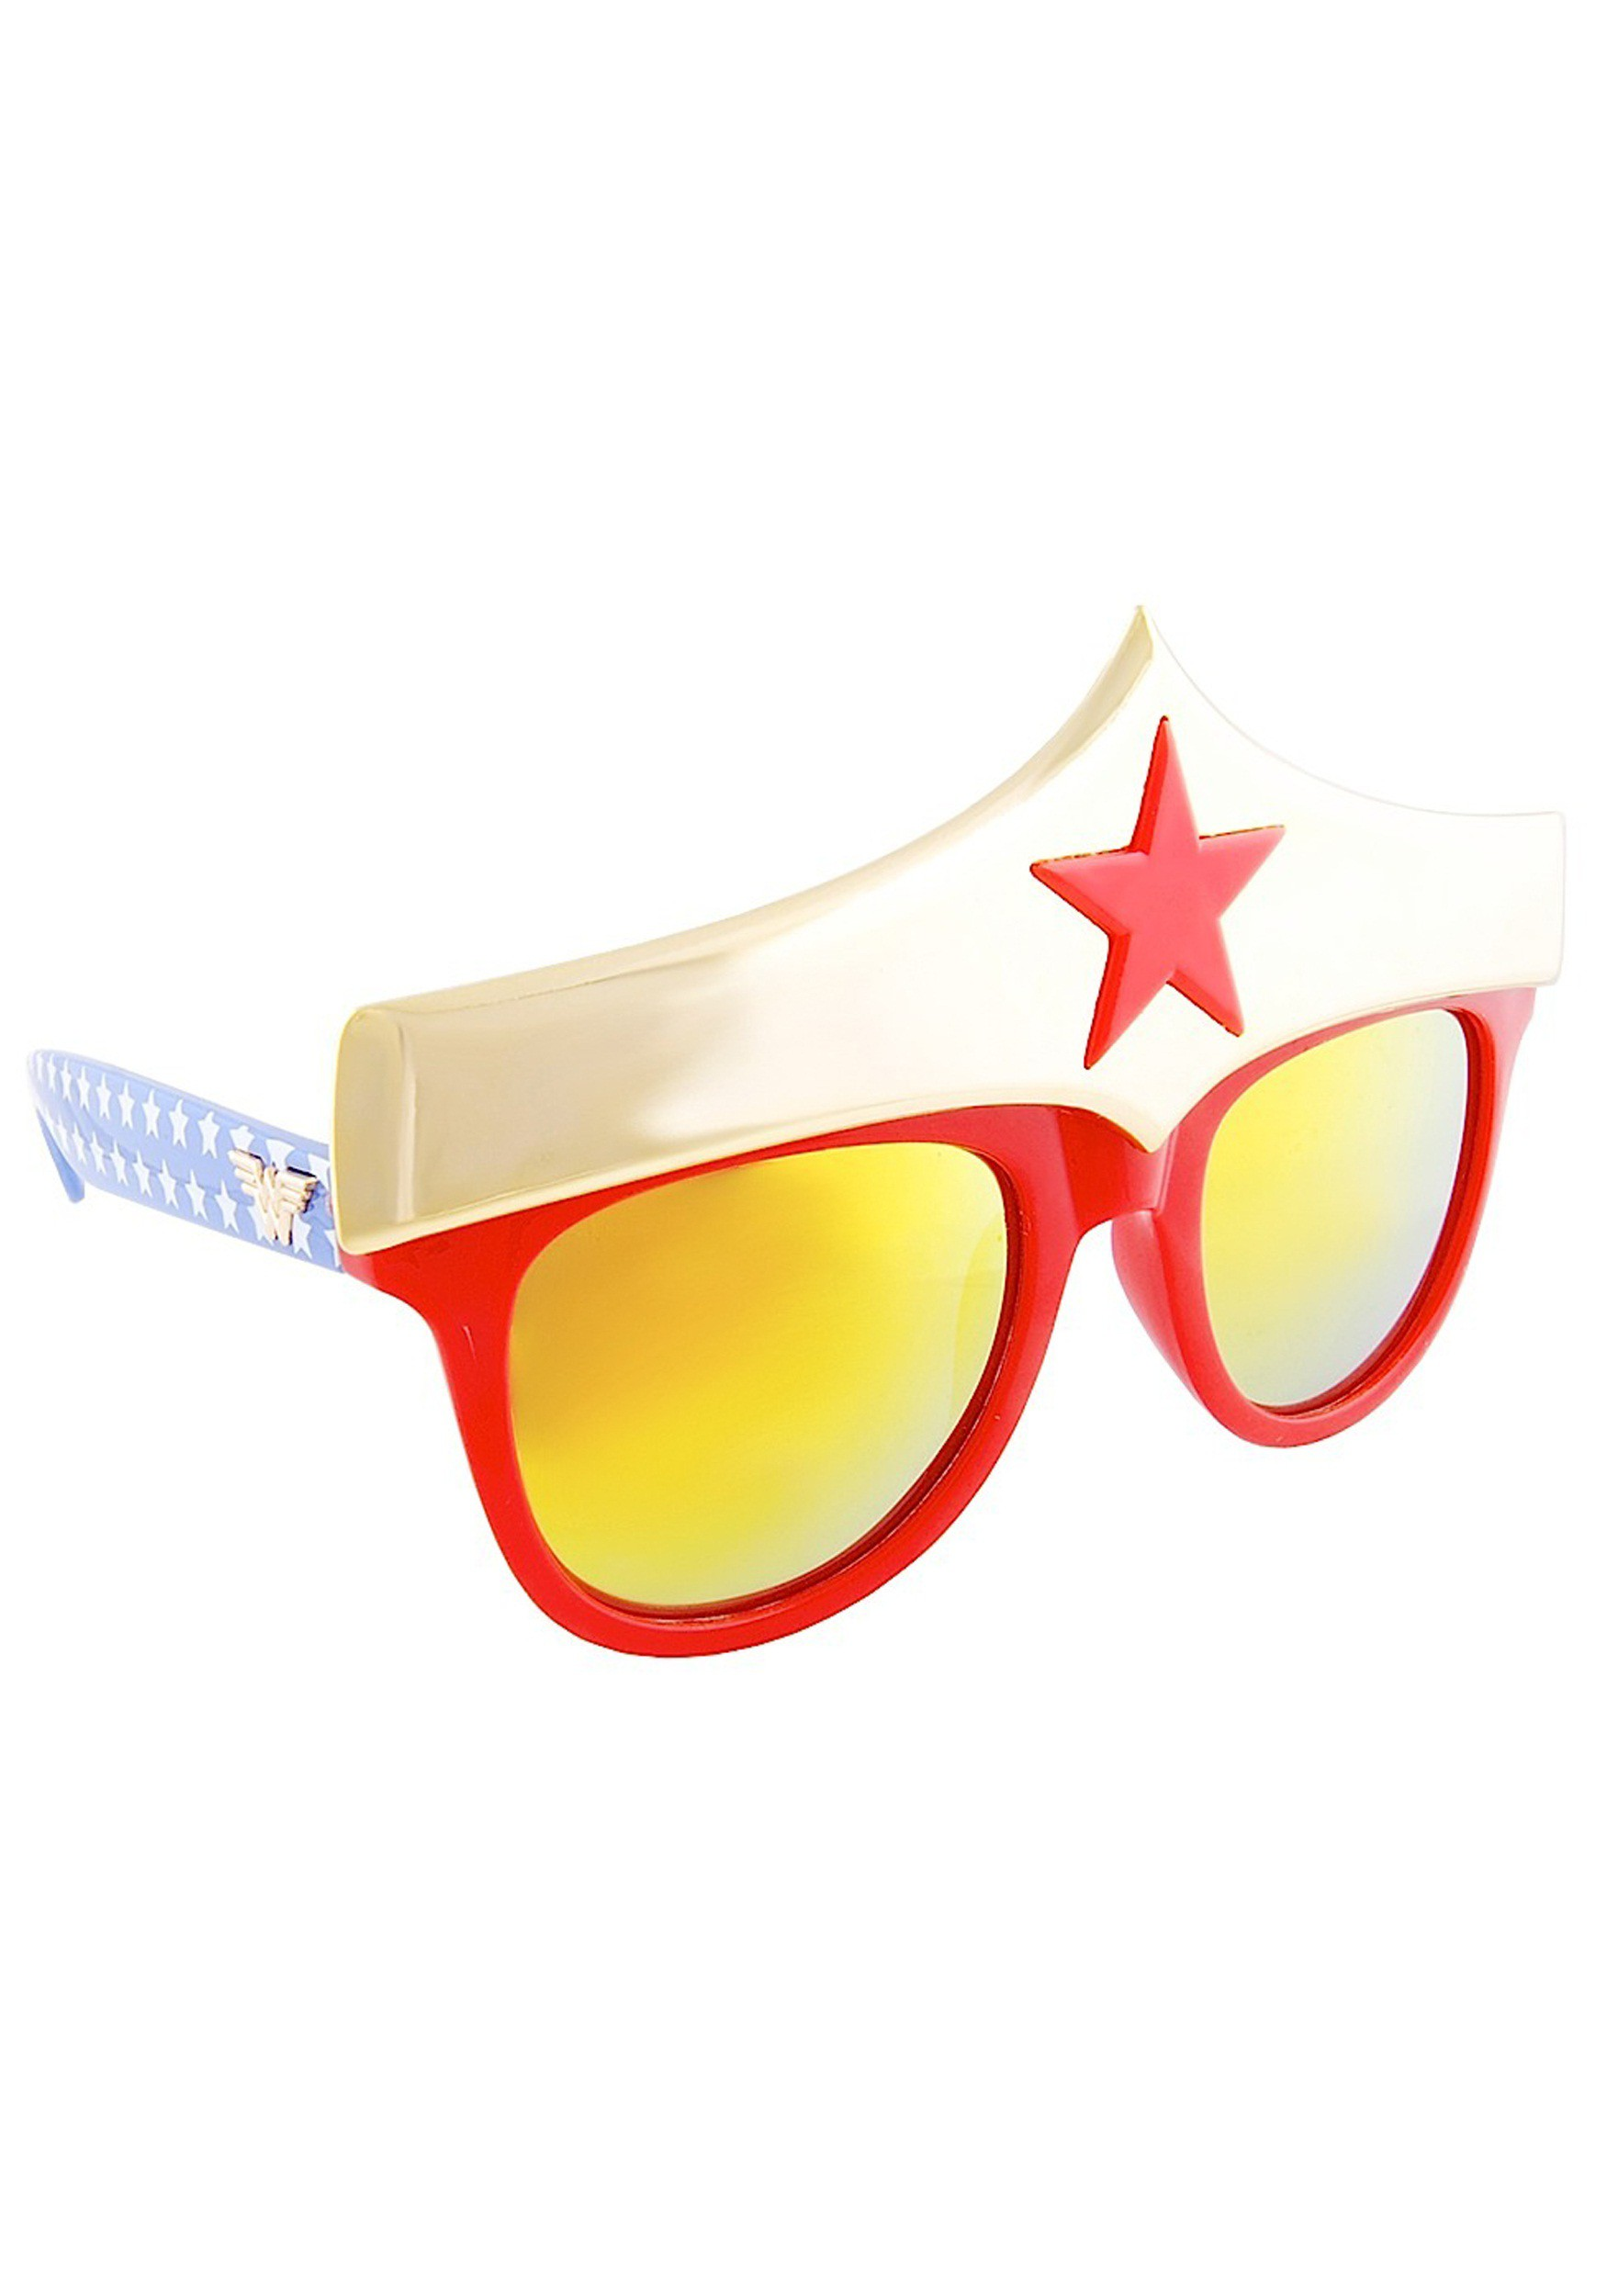 Wonder Woman Sunglasses  wonder woman glasses